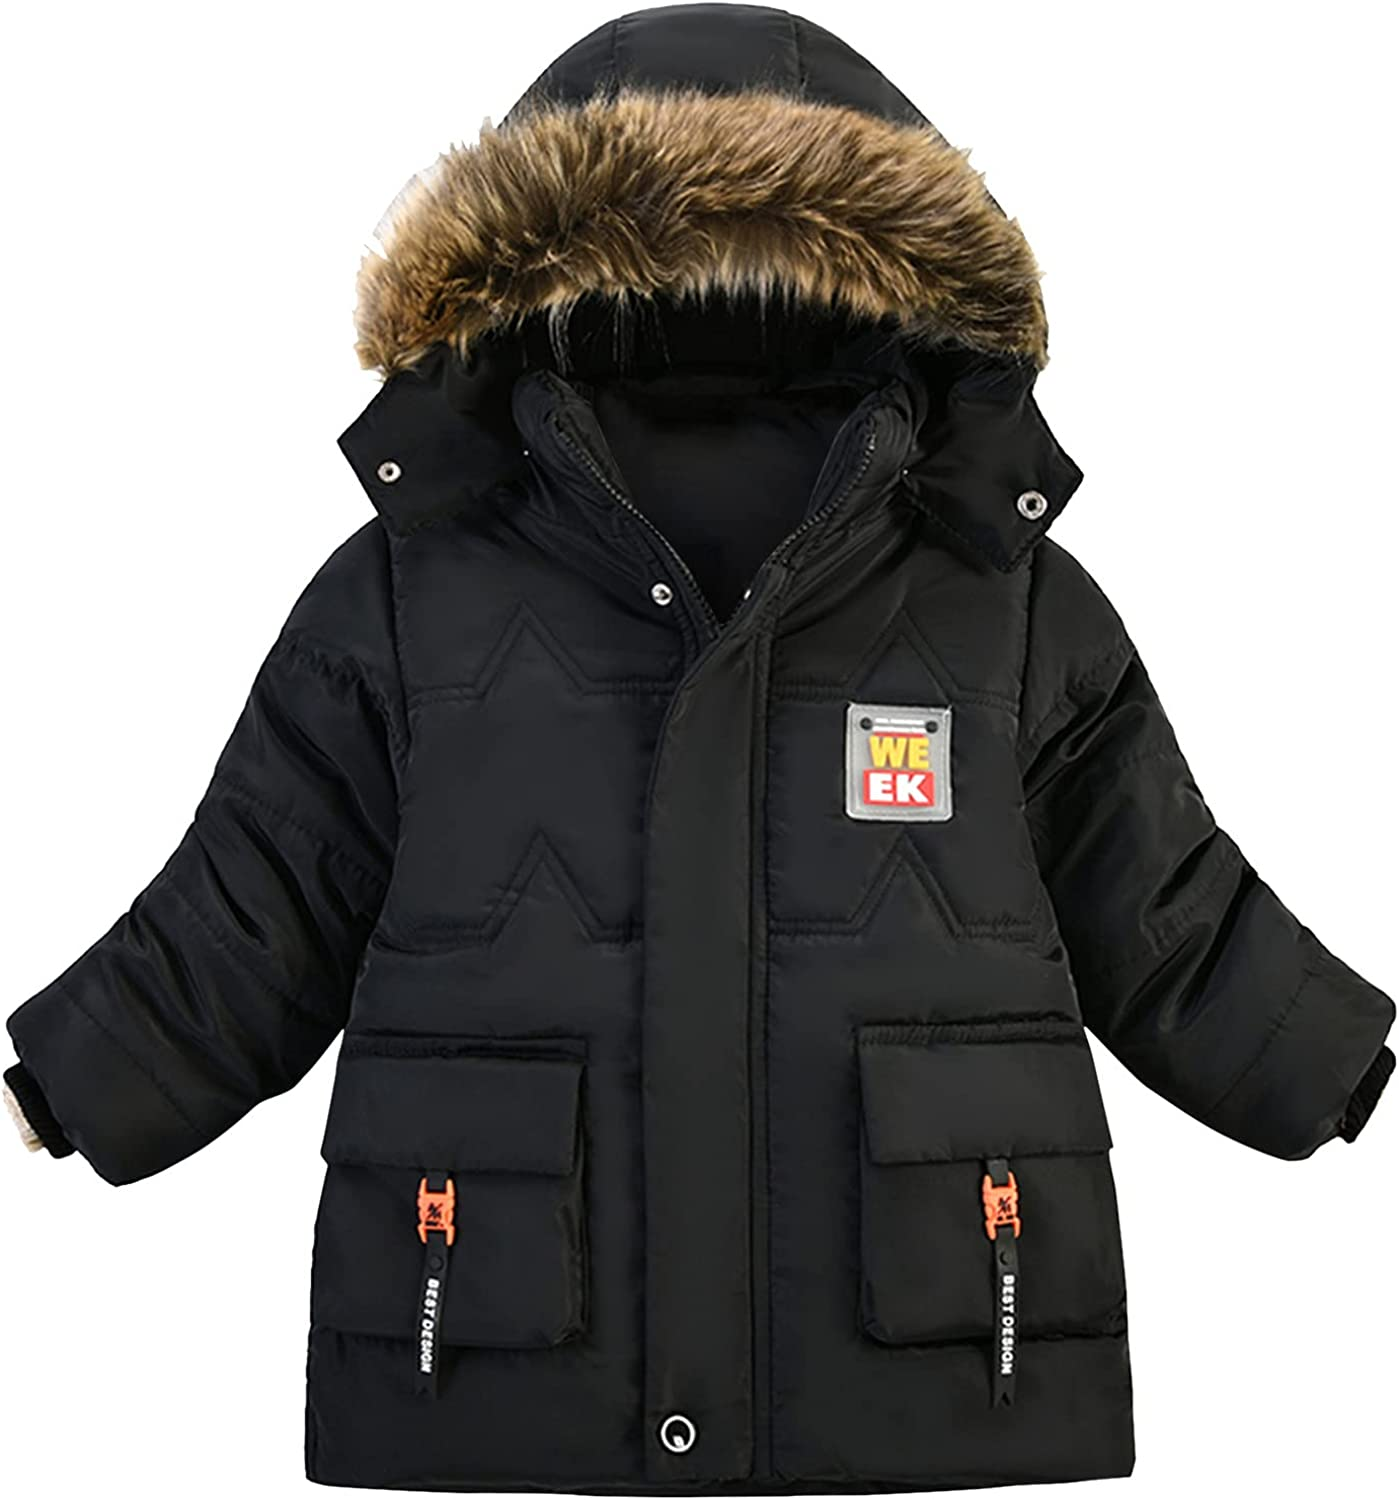 Kids Jacket Autumn And Winter Keep Warm Boys Jacket Hooded Leisure Thicken Cotton Boys Coat Plus Size Kids Clothes